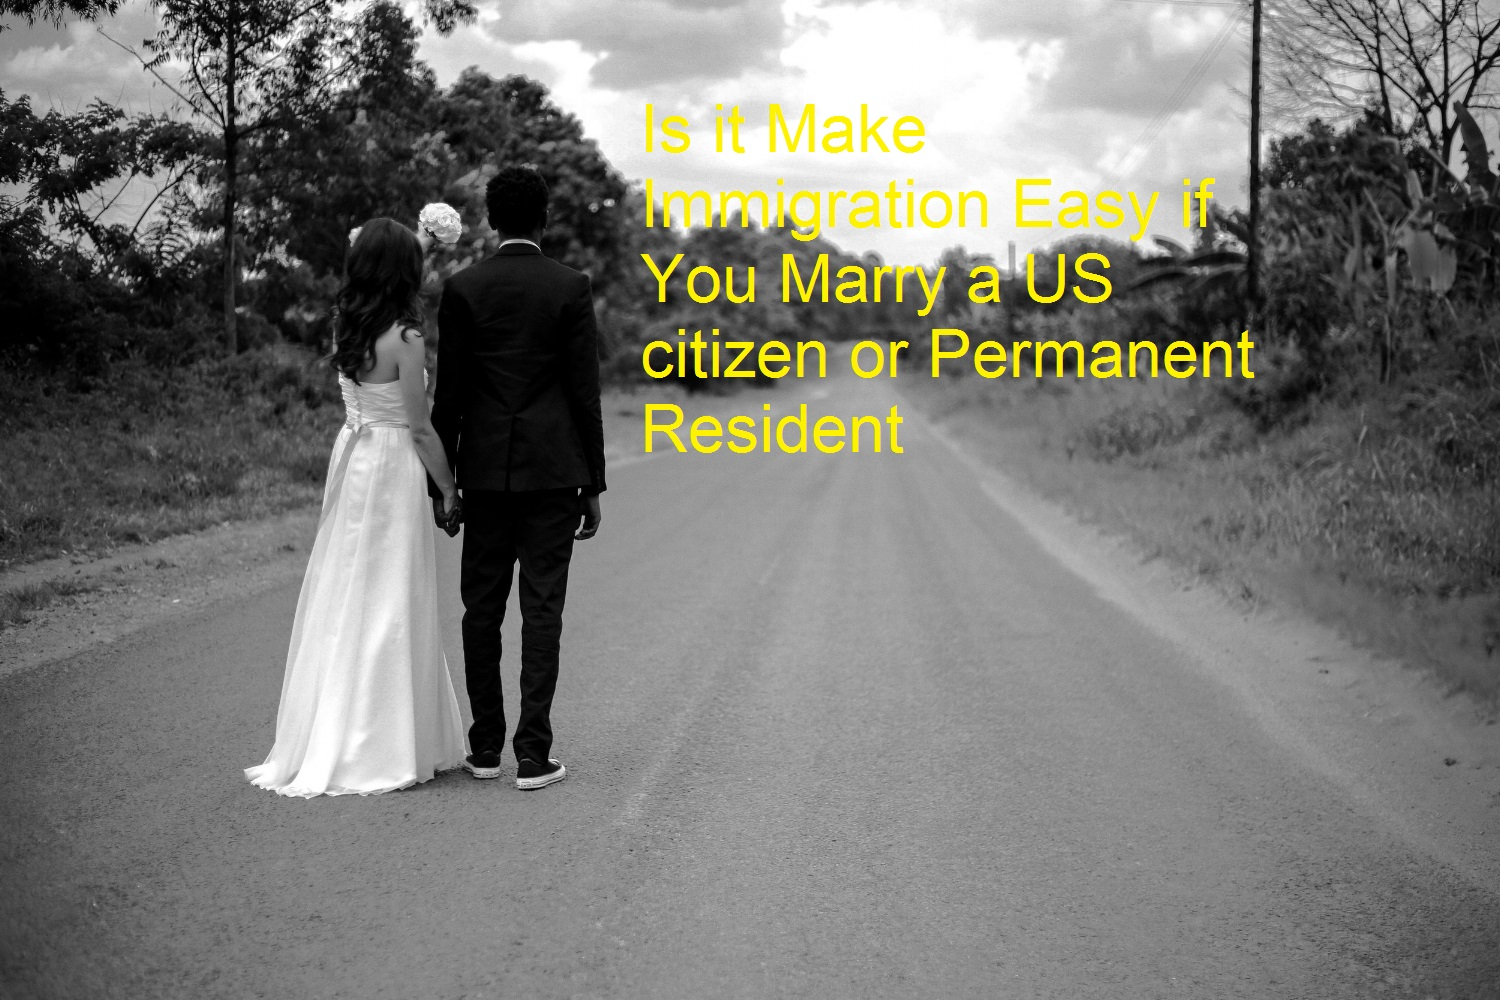 What Makes Immigration Easier- if You Marry a US citizen or Permanent Resident? Read to Know More